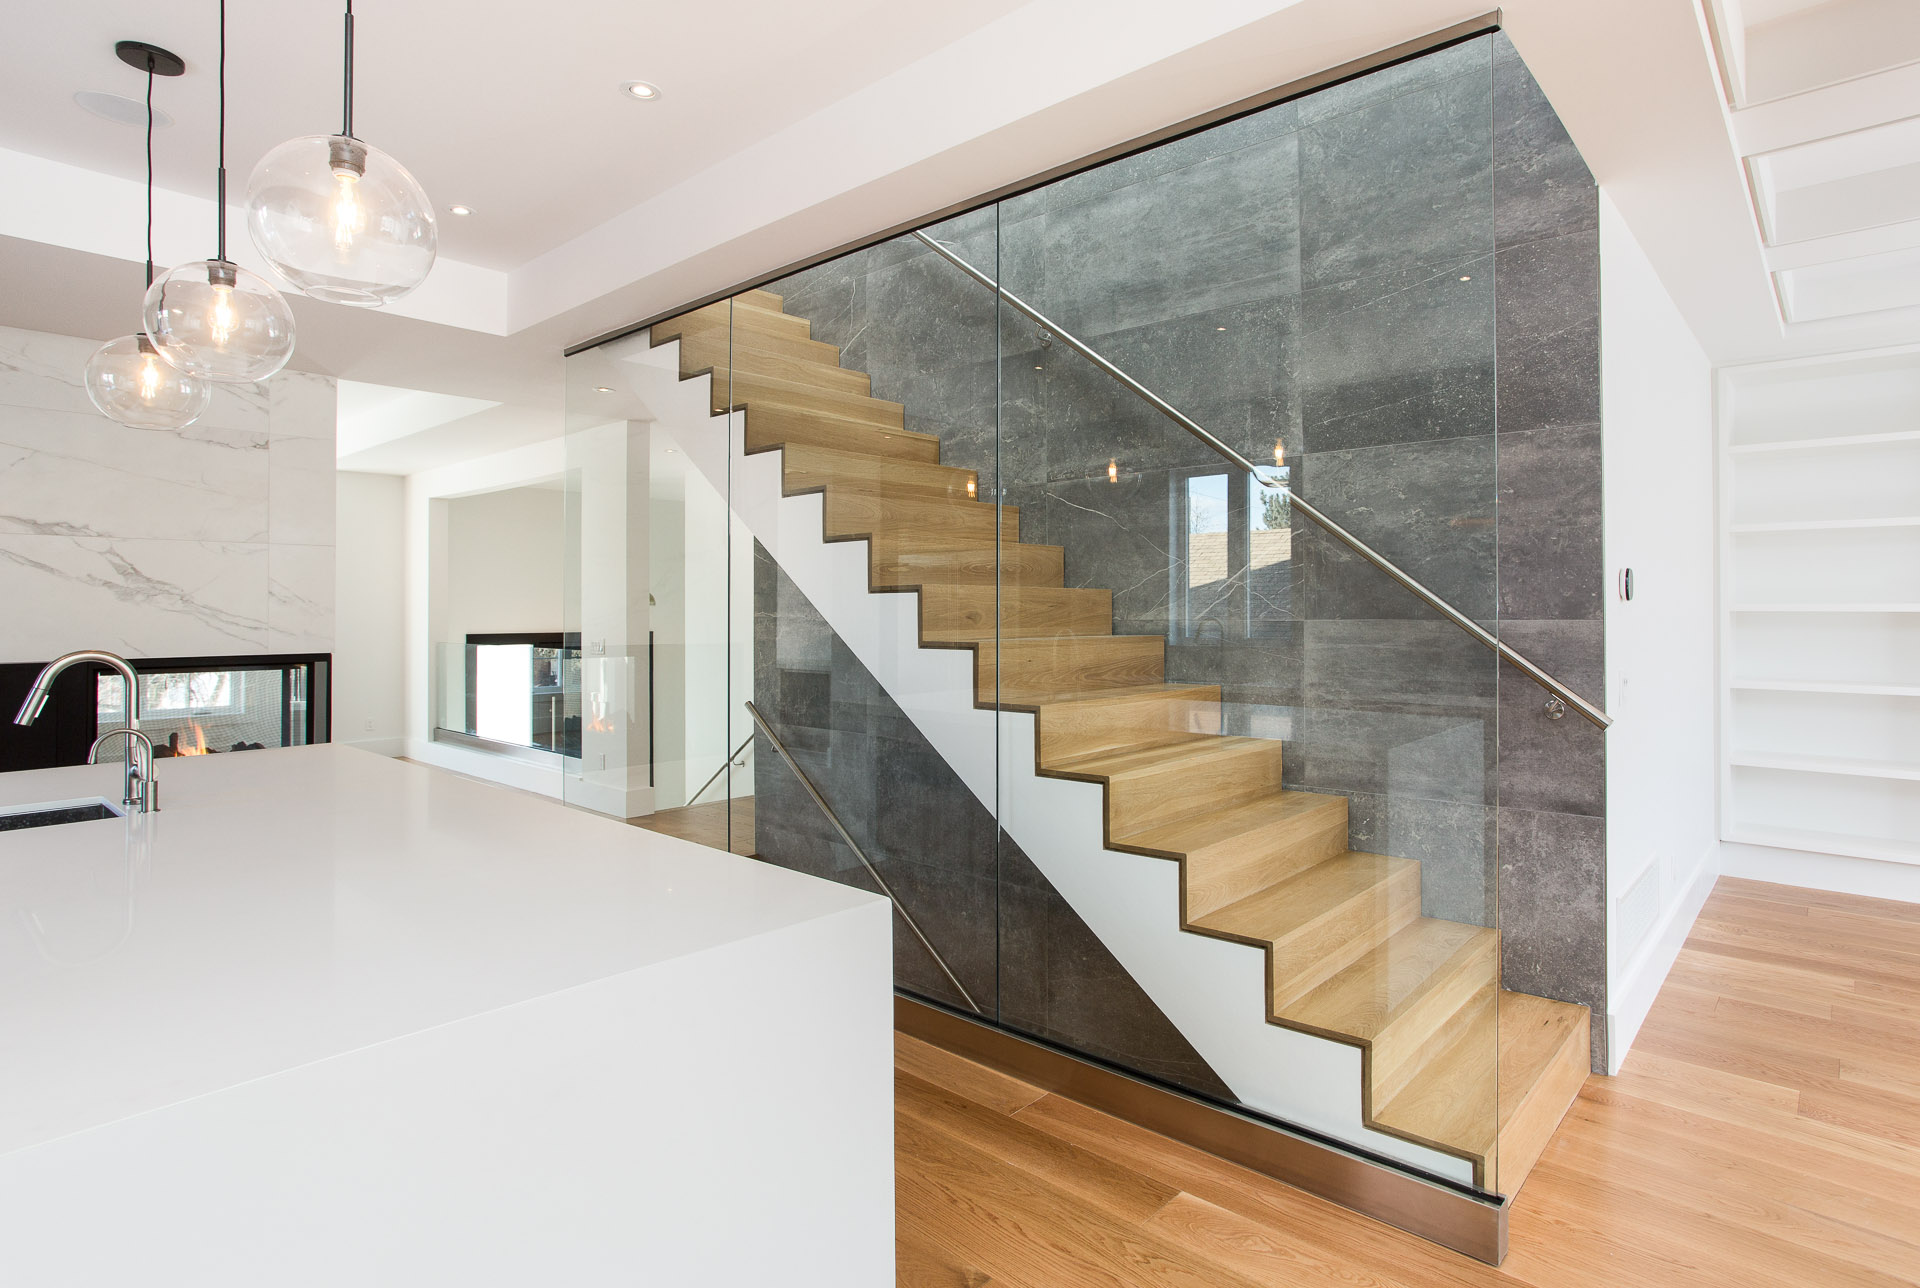 North York Modern Custom Home - Feature Wall & Stairs